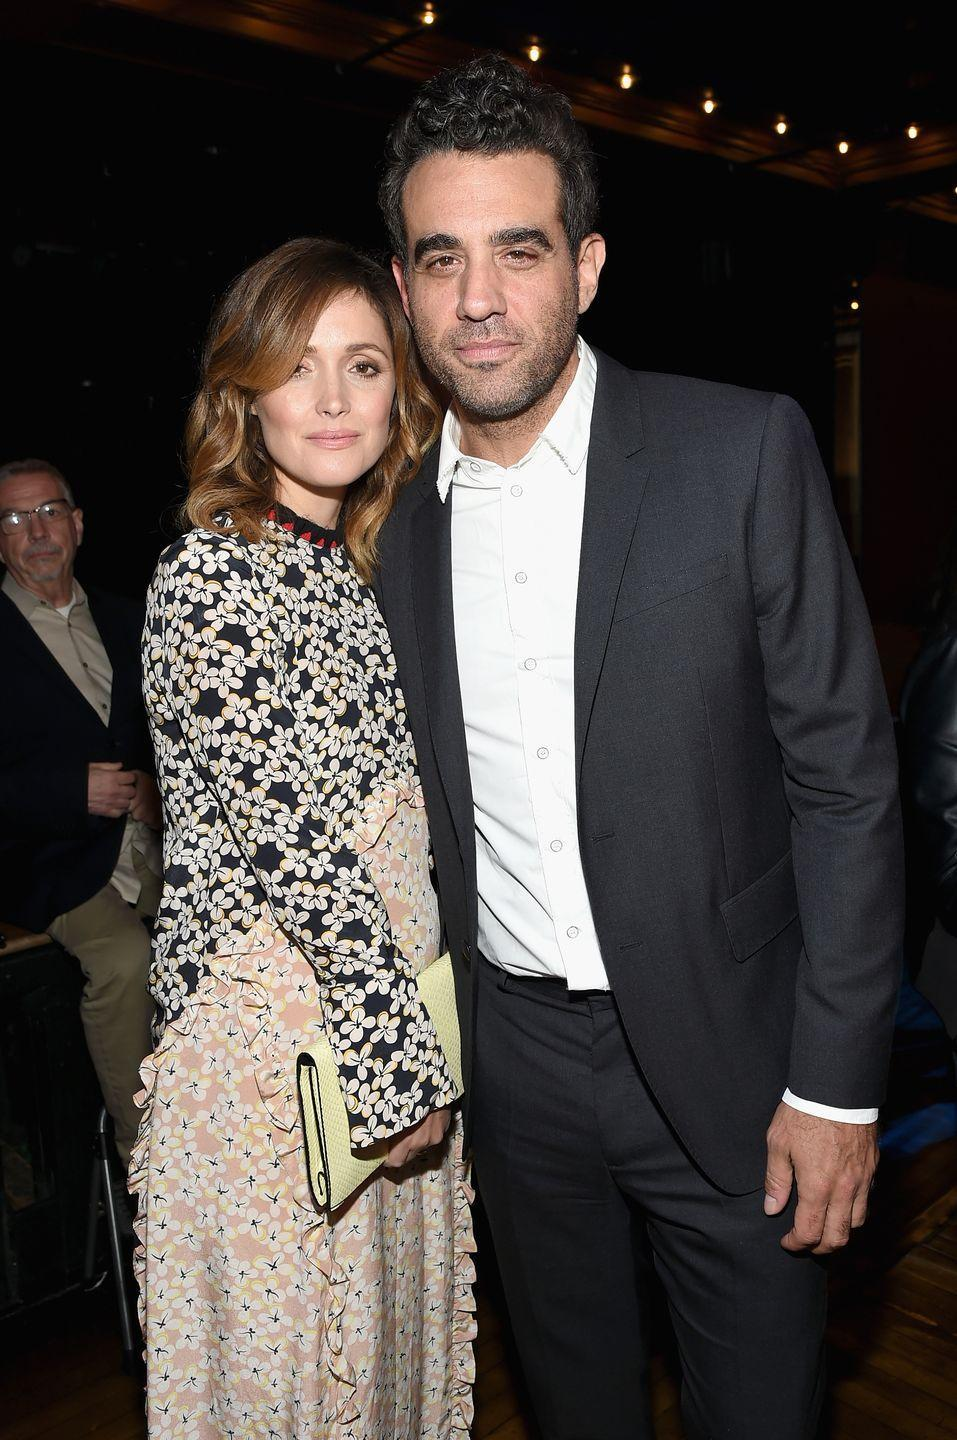 <p>The pair remains relatively mum when it comes to sharing their personal lives and didn't publicly confirm reports of their first child, Rocco. Byrne and Cannavale welcomed their second child, Rafa, in 2017.</p>